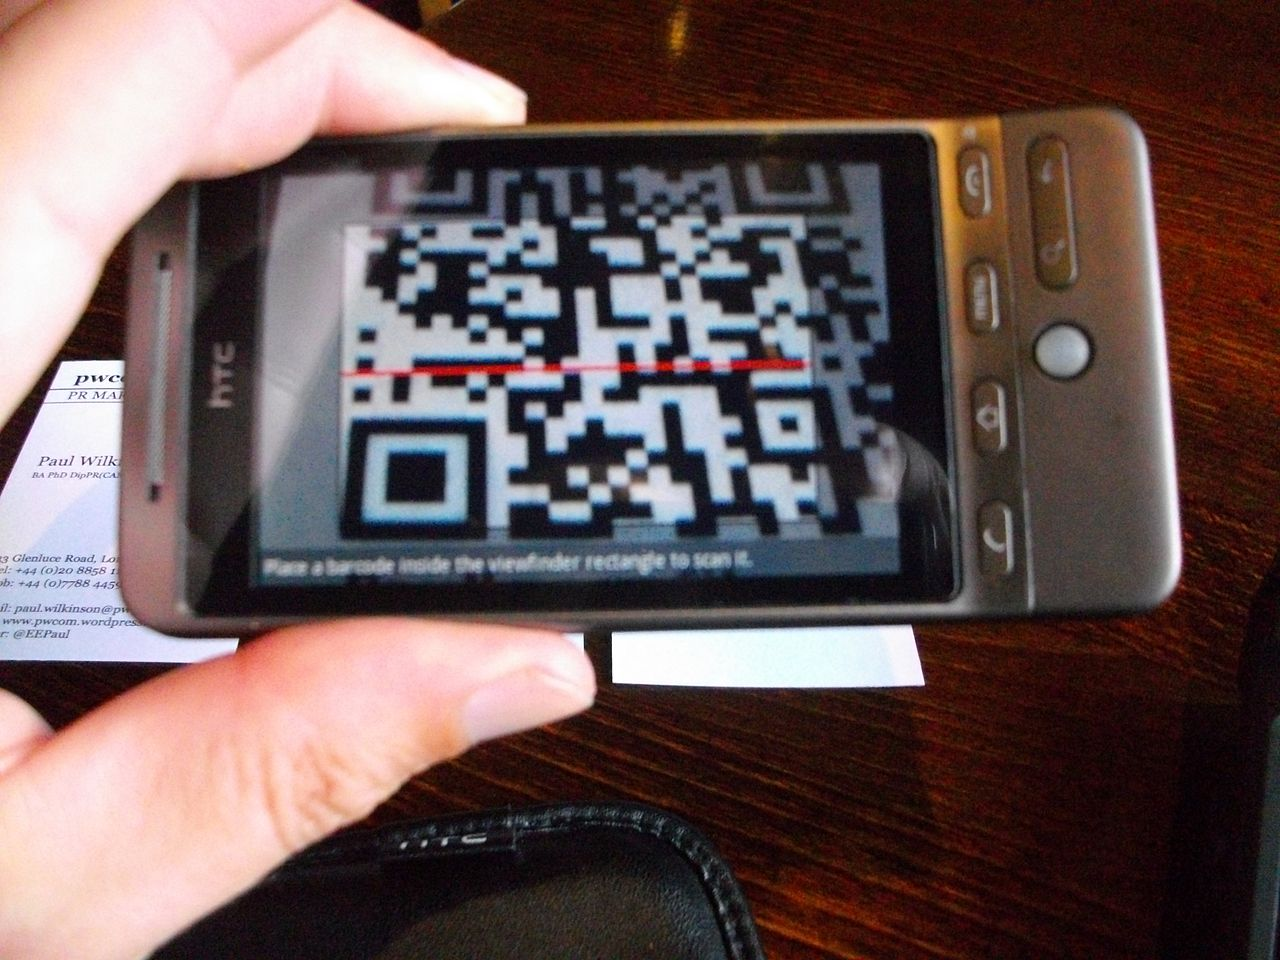 1280px-Scanning_QR_codes_on_business_cards